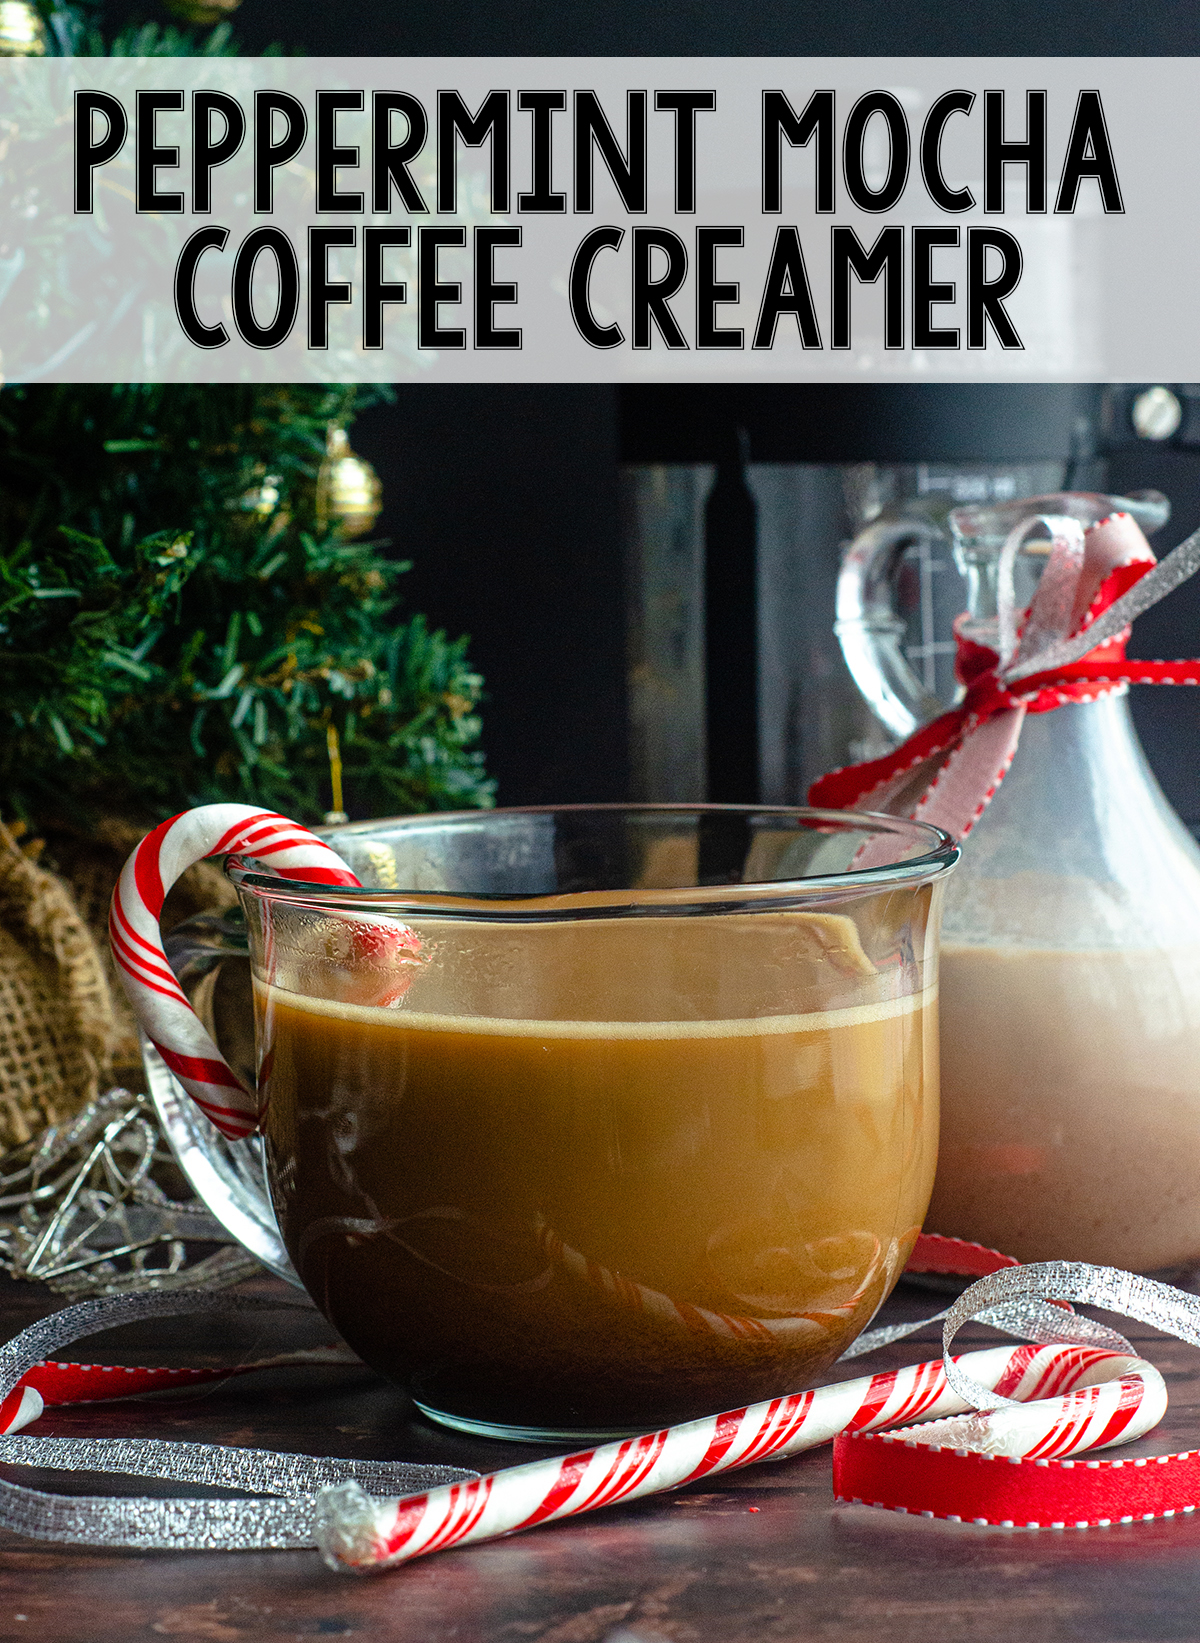 Just a few ingredients and 5 minutes gets you an all-natural, chemical free holiday flavored cup of coffee!